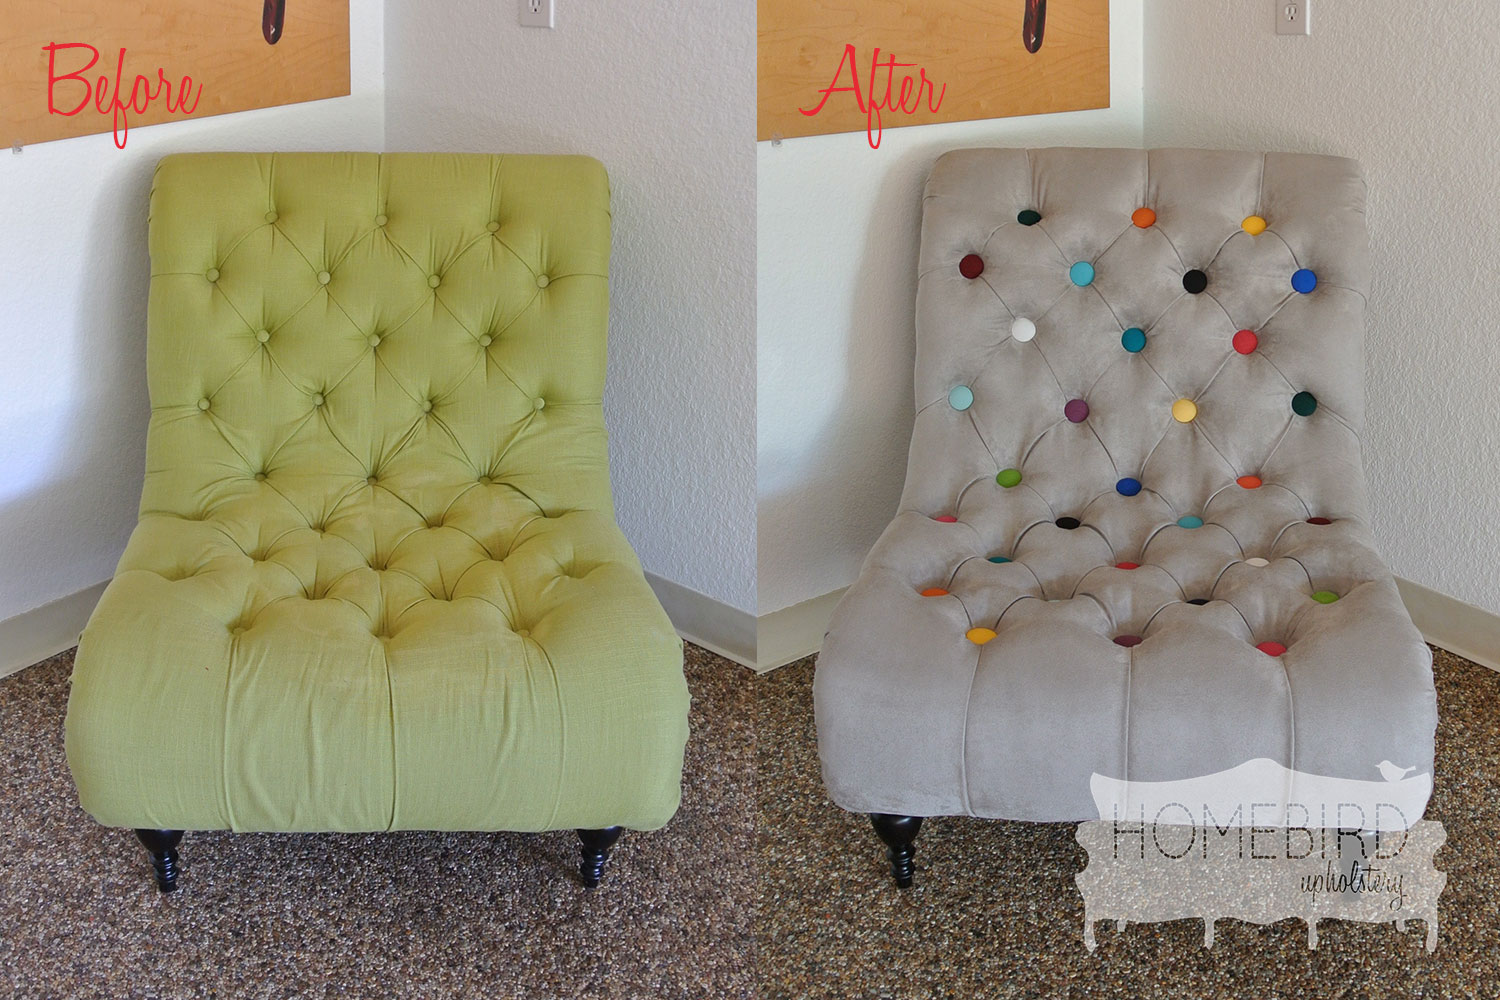 Jenna-Pilant-Homebird-Upholstery-Before-&-After-Tufted-Chair